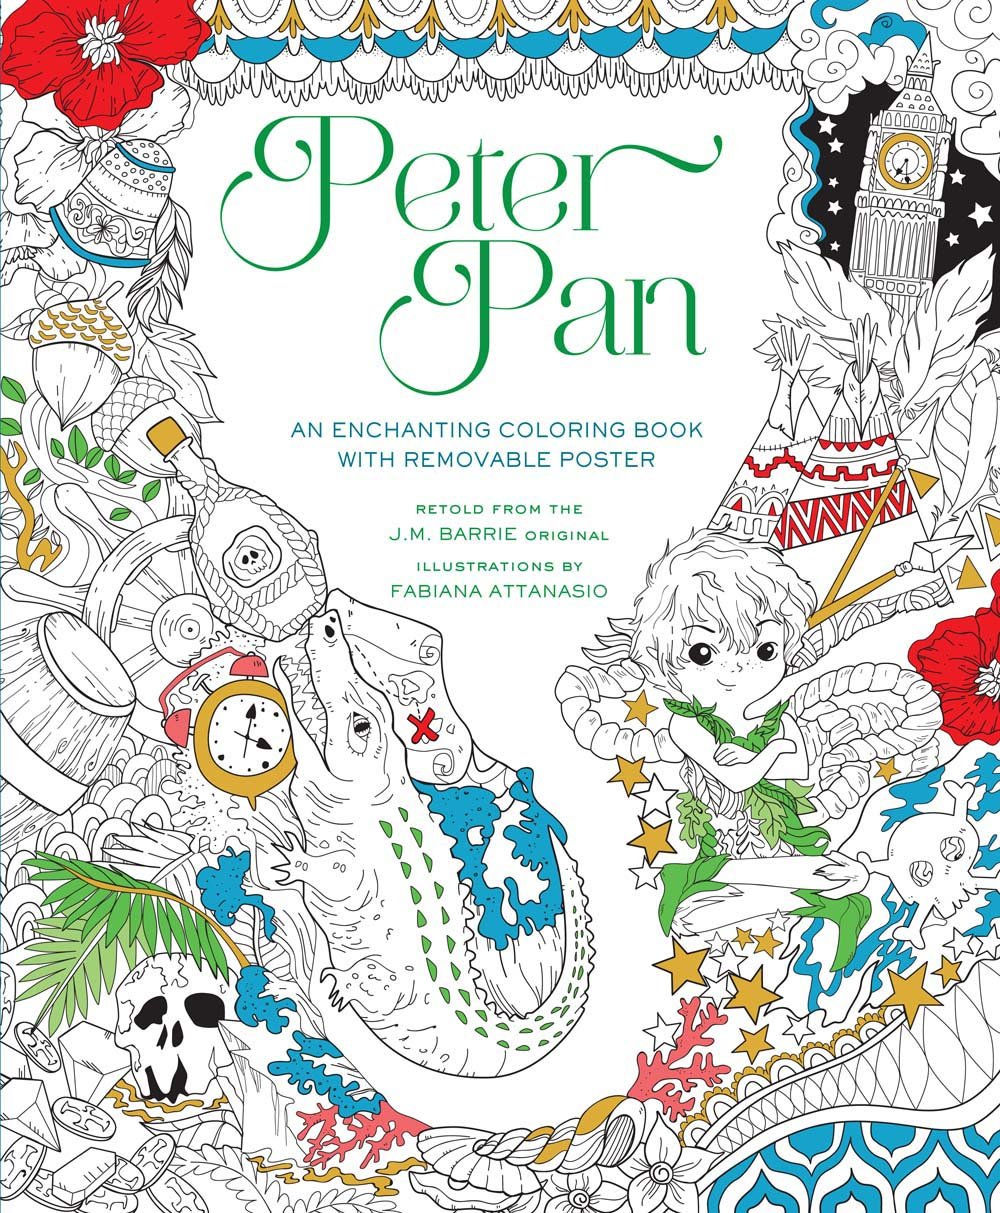 Peter Pan Coloring Book: Fabiana Attanasio: 9781454920908: Amazon ...